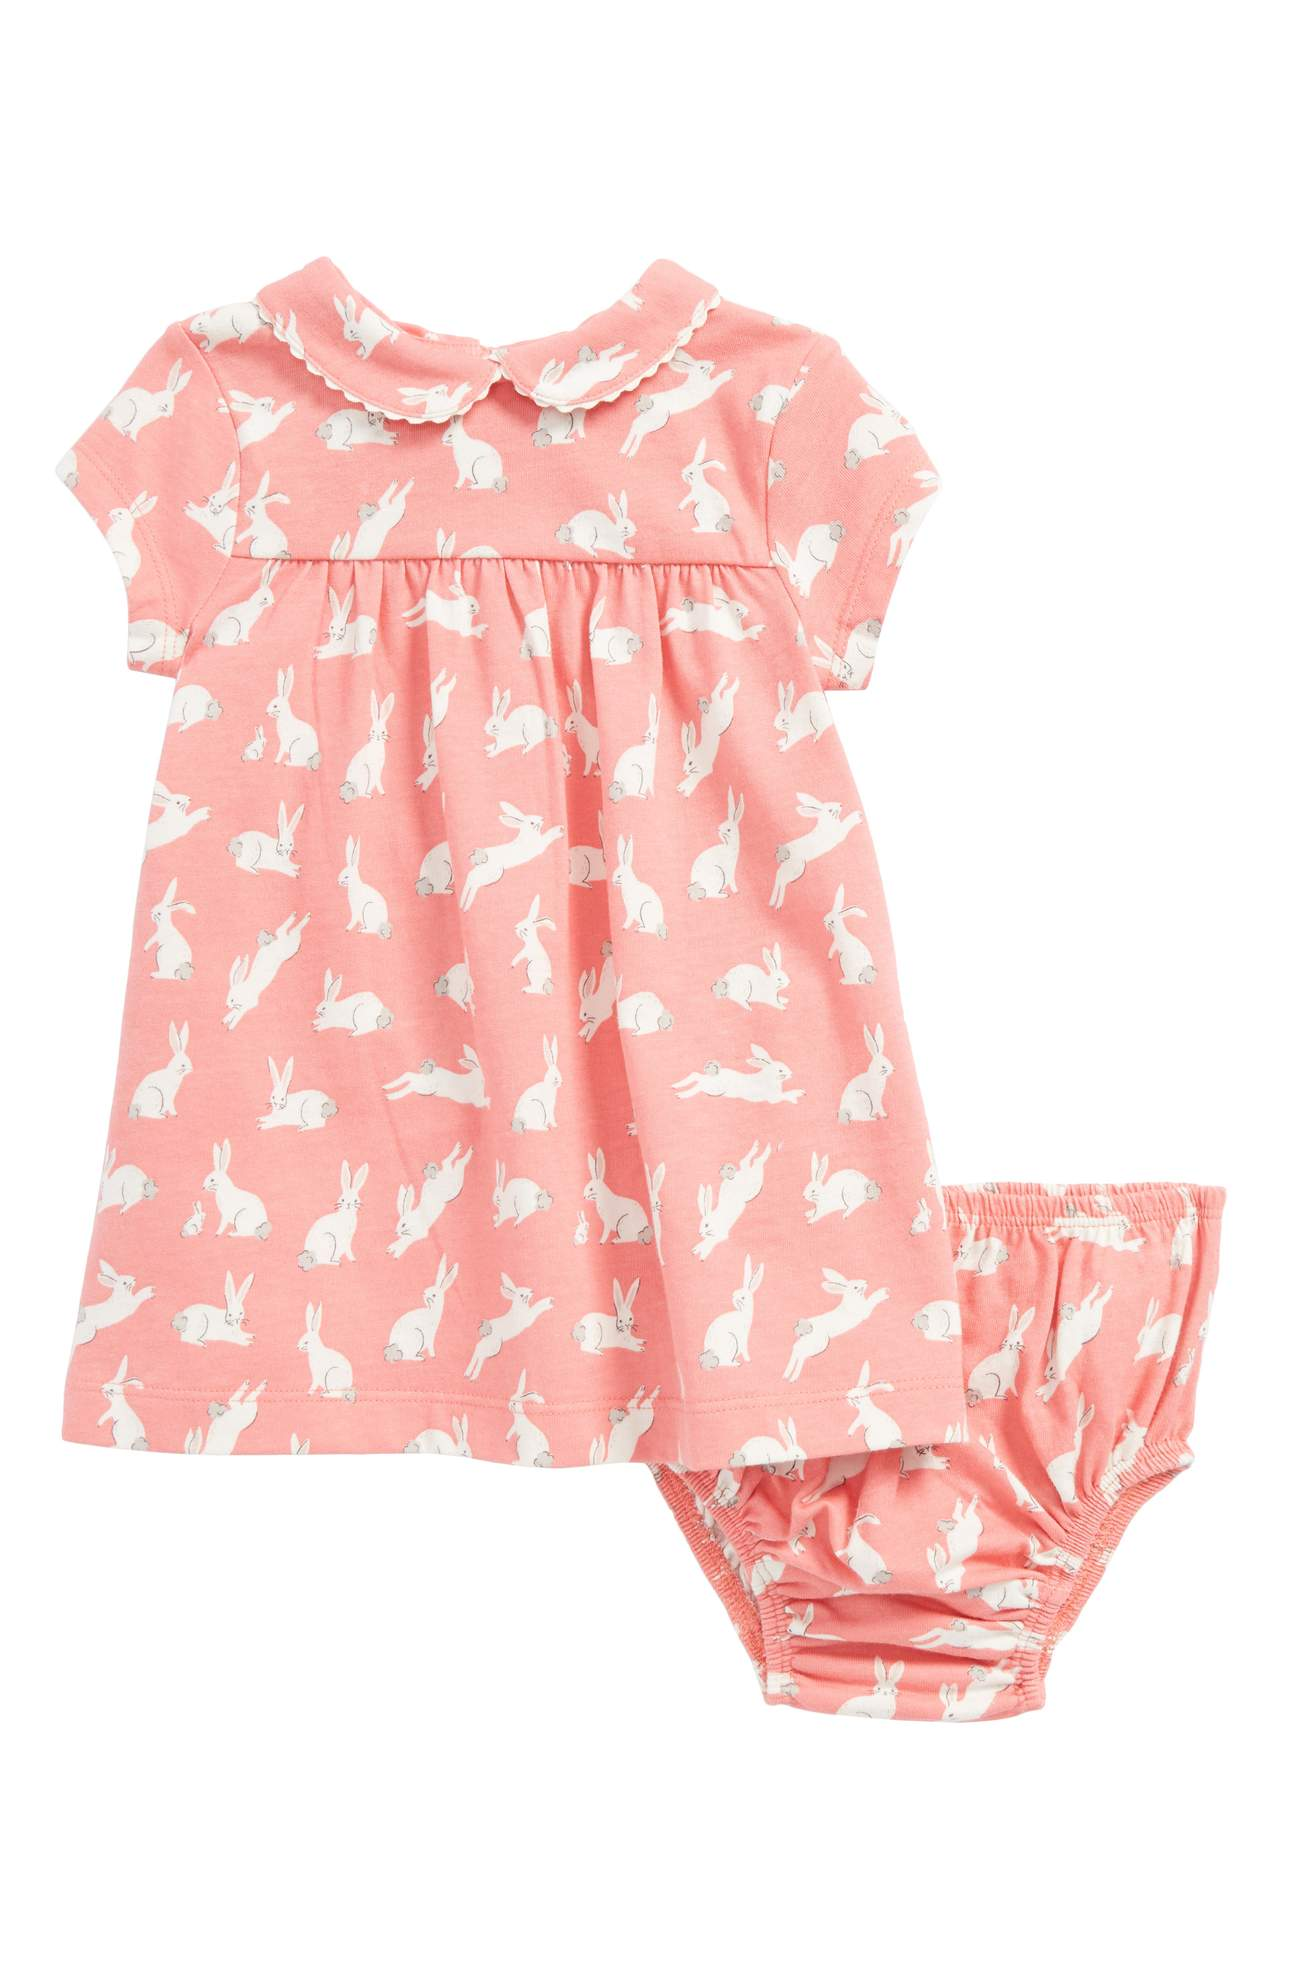 Let's start things off with the 'smallest' family members.{&amp;nbsp;} Adorable cottontail bunnies hop around on this super-soft cotton-jersey dress topped with a sweet Peter Pan collar. Perfect for the little babe in your life. Price: $34 at Nordstrom{&amp;nbsp;}<p>(Image: Nordstrom)</p>